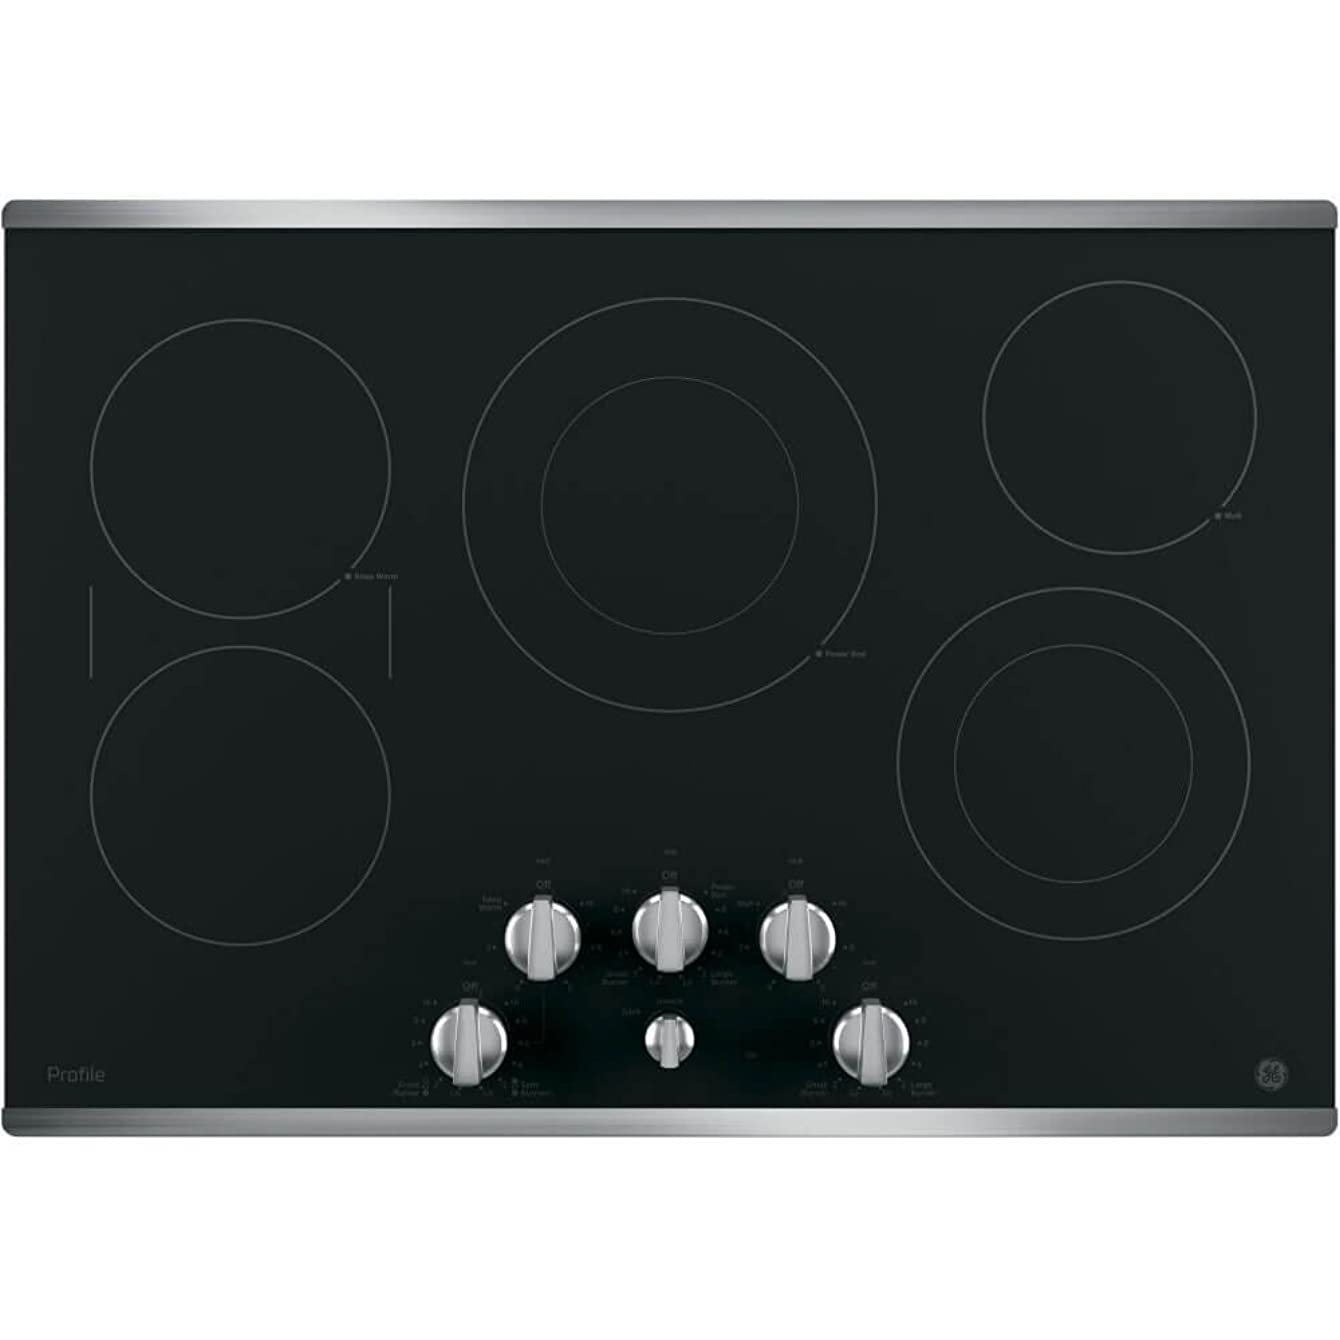 GE PP7030SJSS 30 Inch Electric Cooktop with 5 Radiant, Bridge SyncBurners, 9/6 Inch Power Boil Element, Keep Warm Setting, Red LED Backlit Knobs, ADA Compliant Fits Guarantee